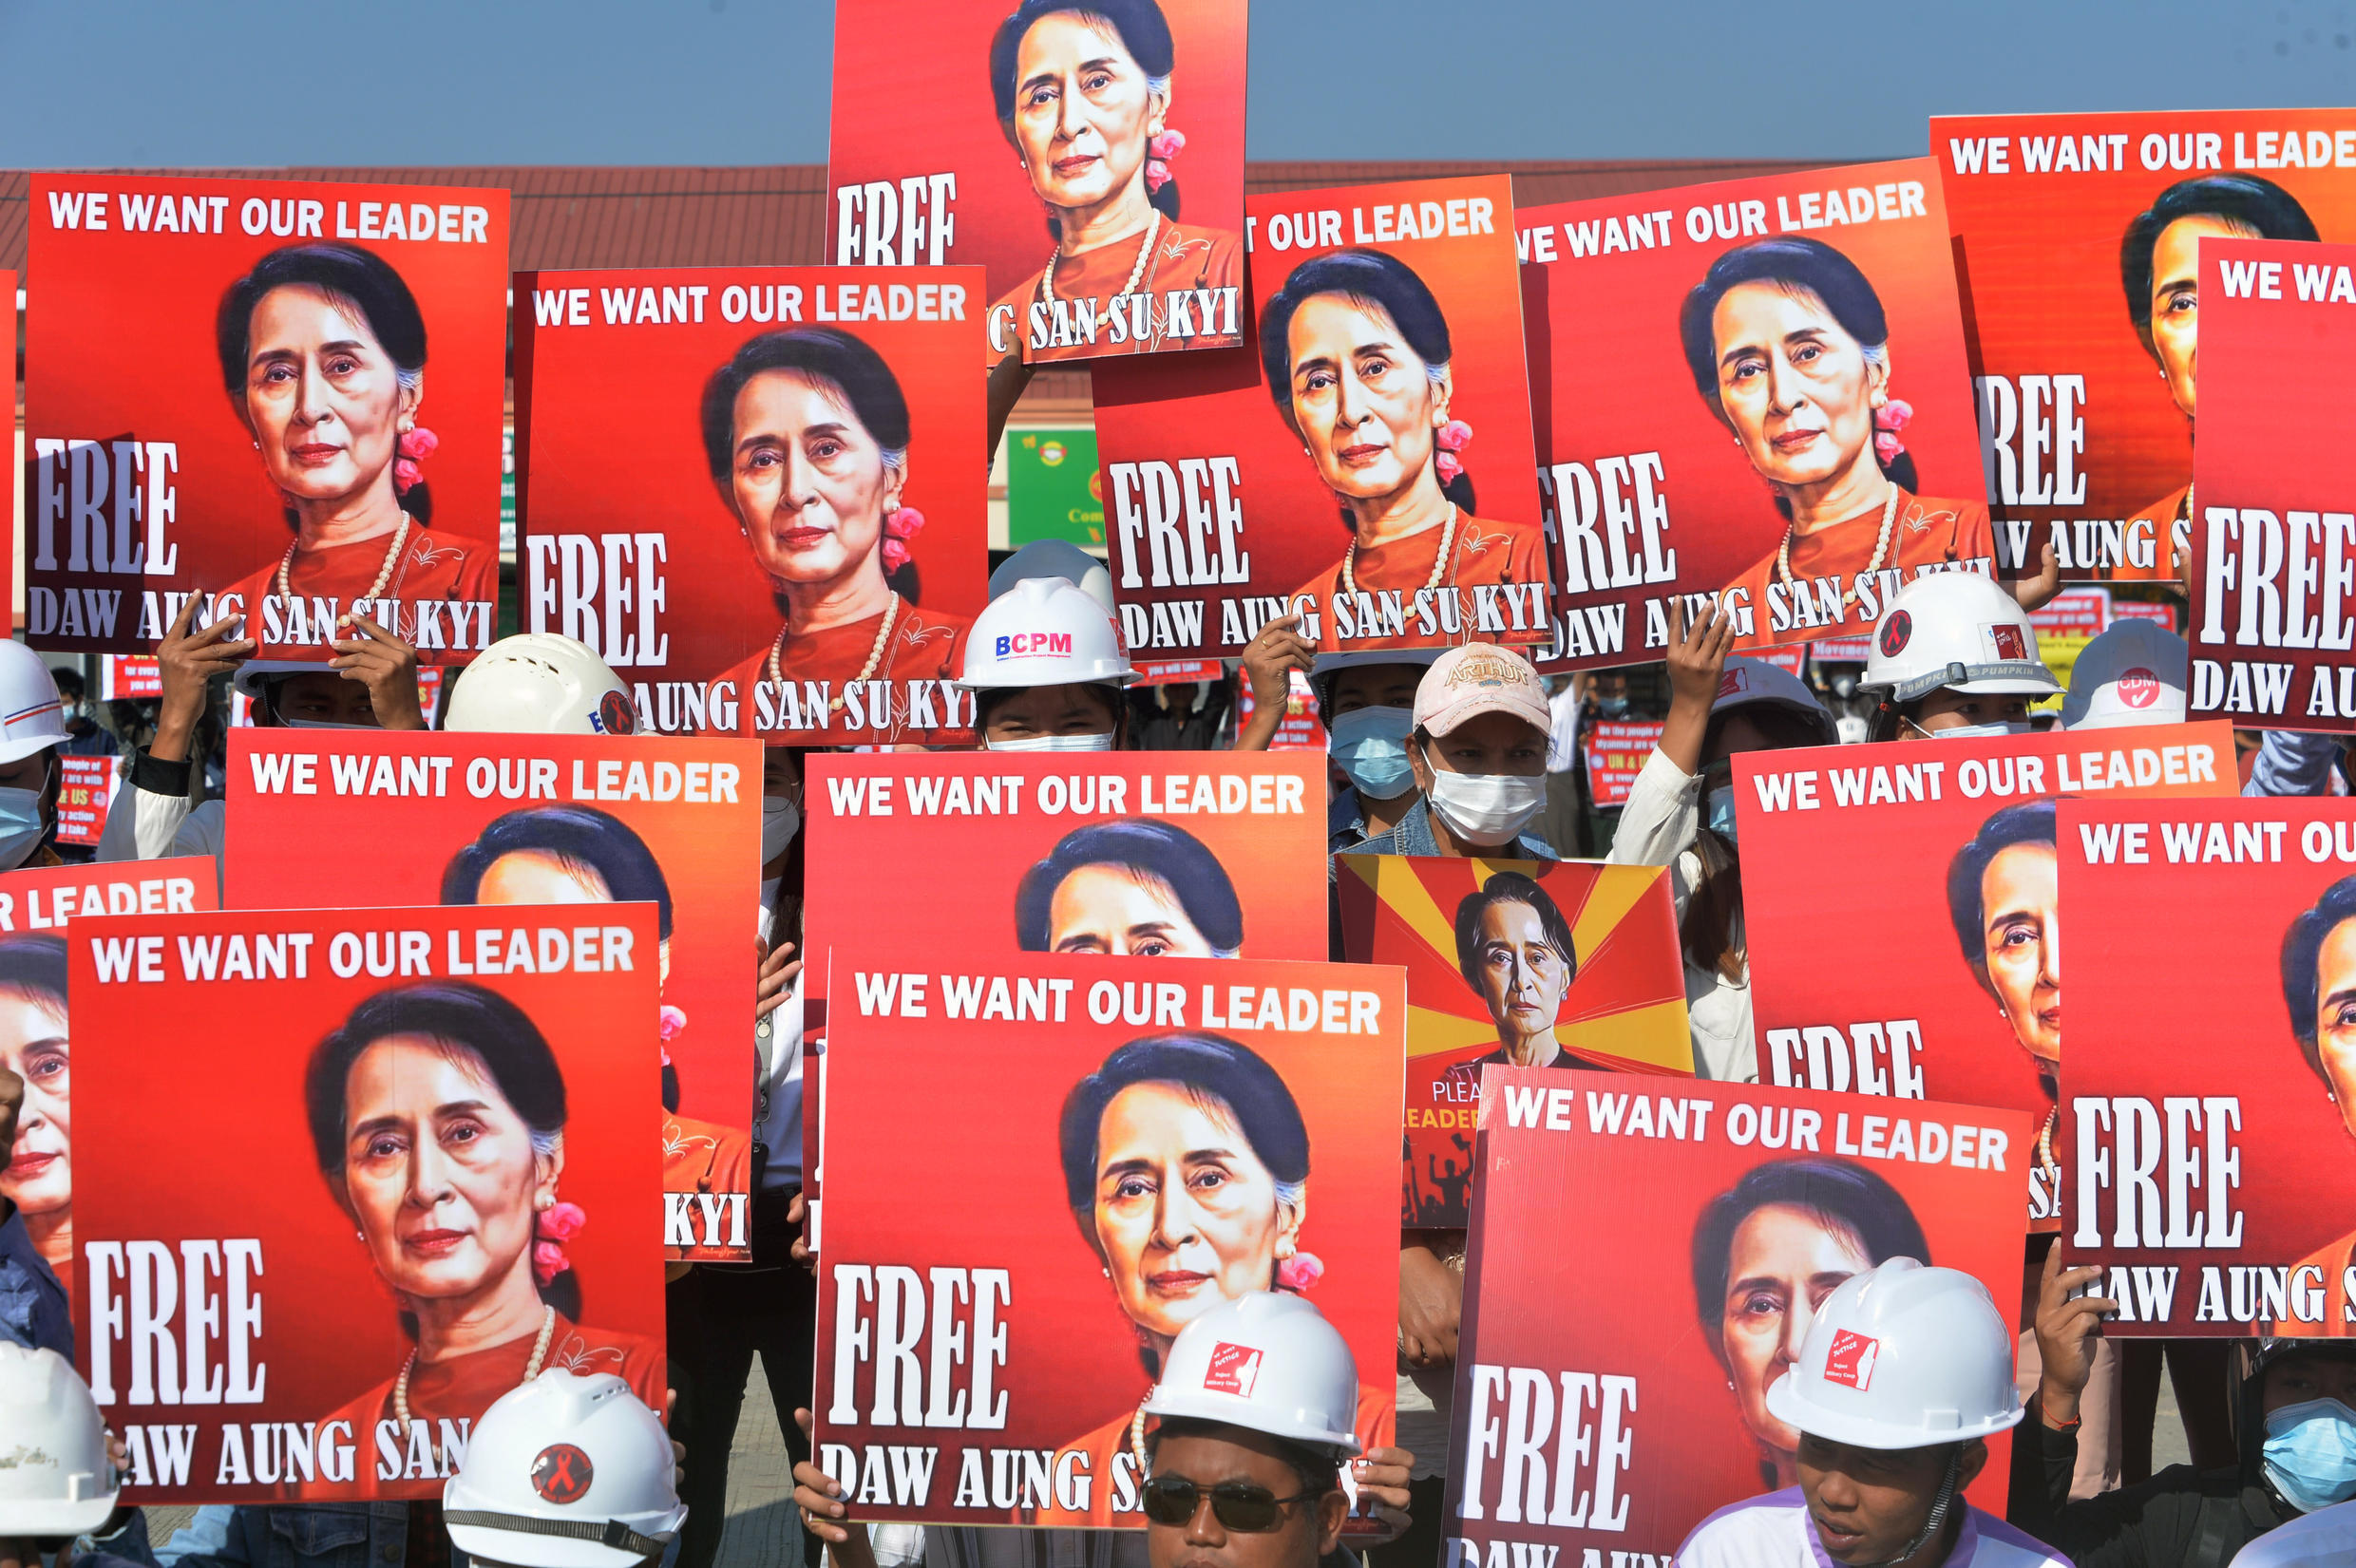 Aung San Suu Kyi has been detained since the day of the coup